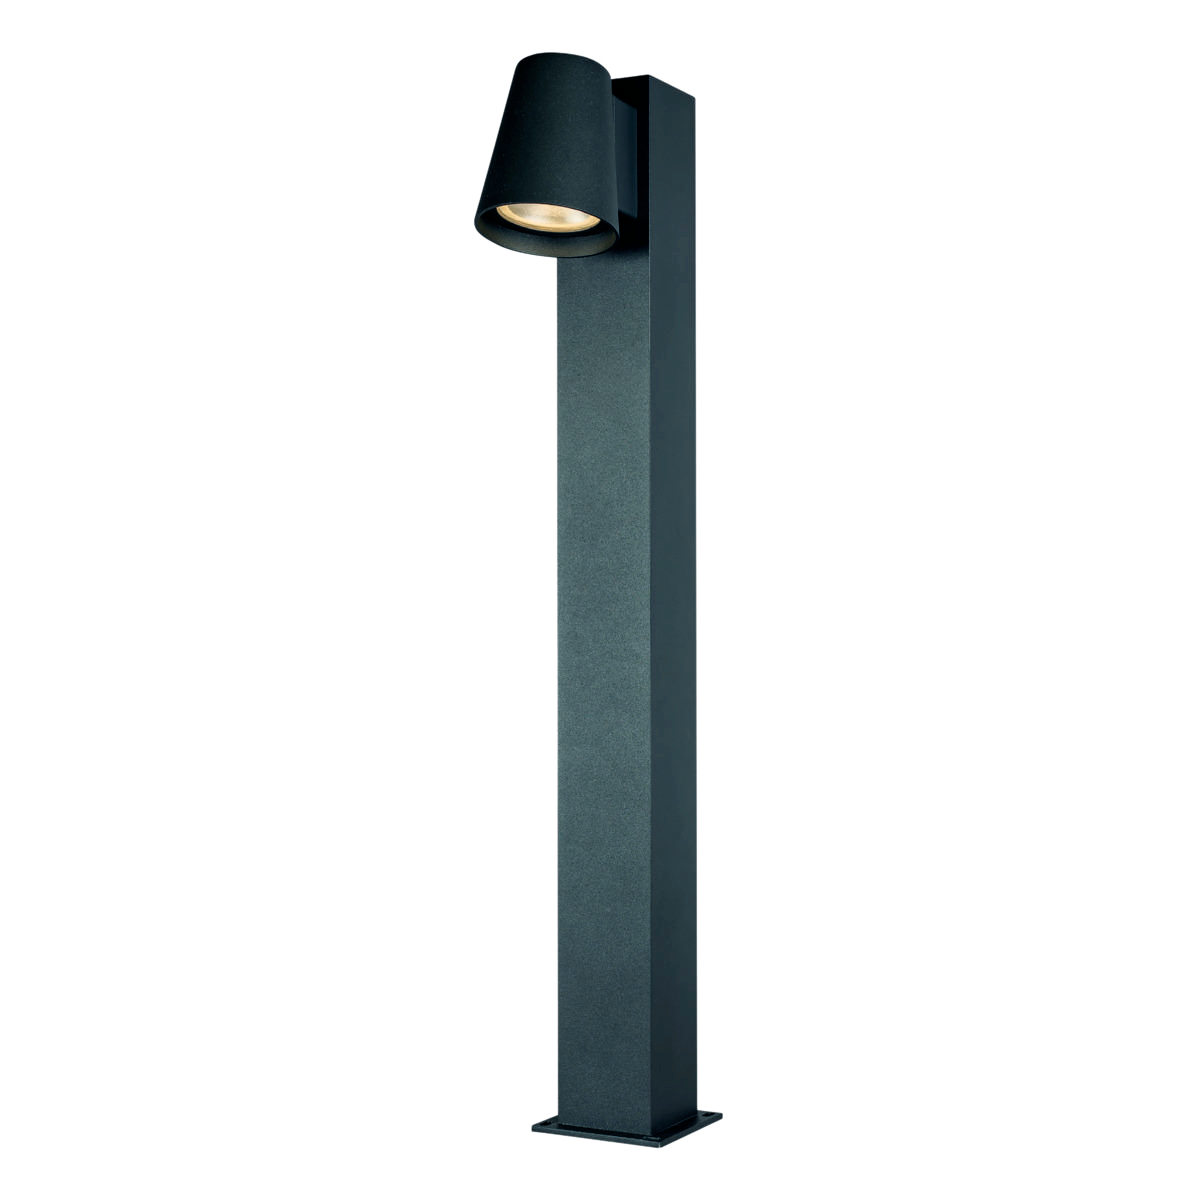 Hide-a-lite Cone Pillar